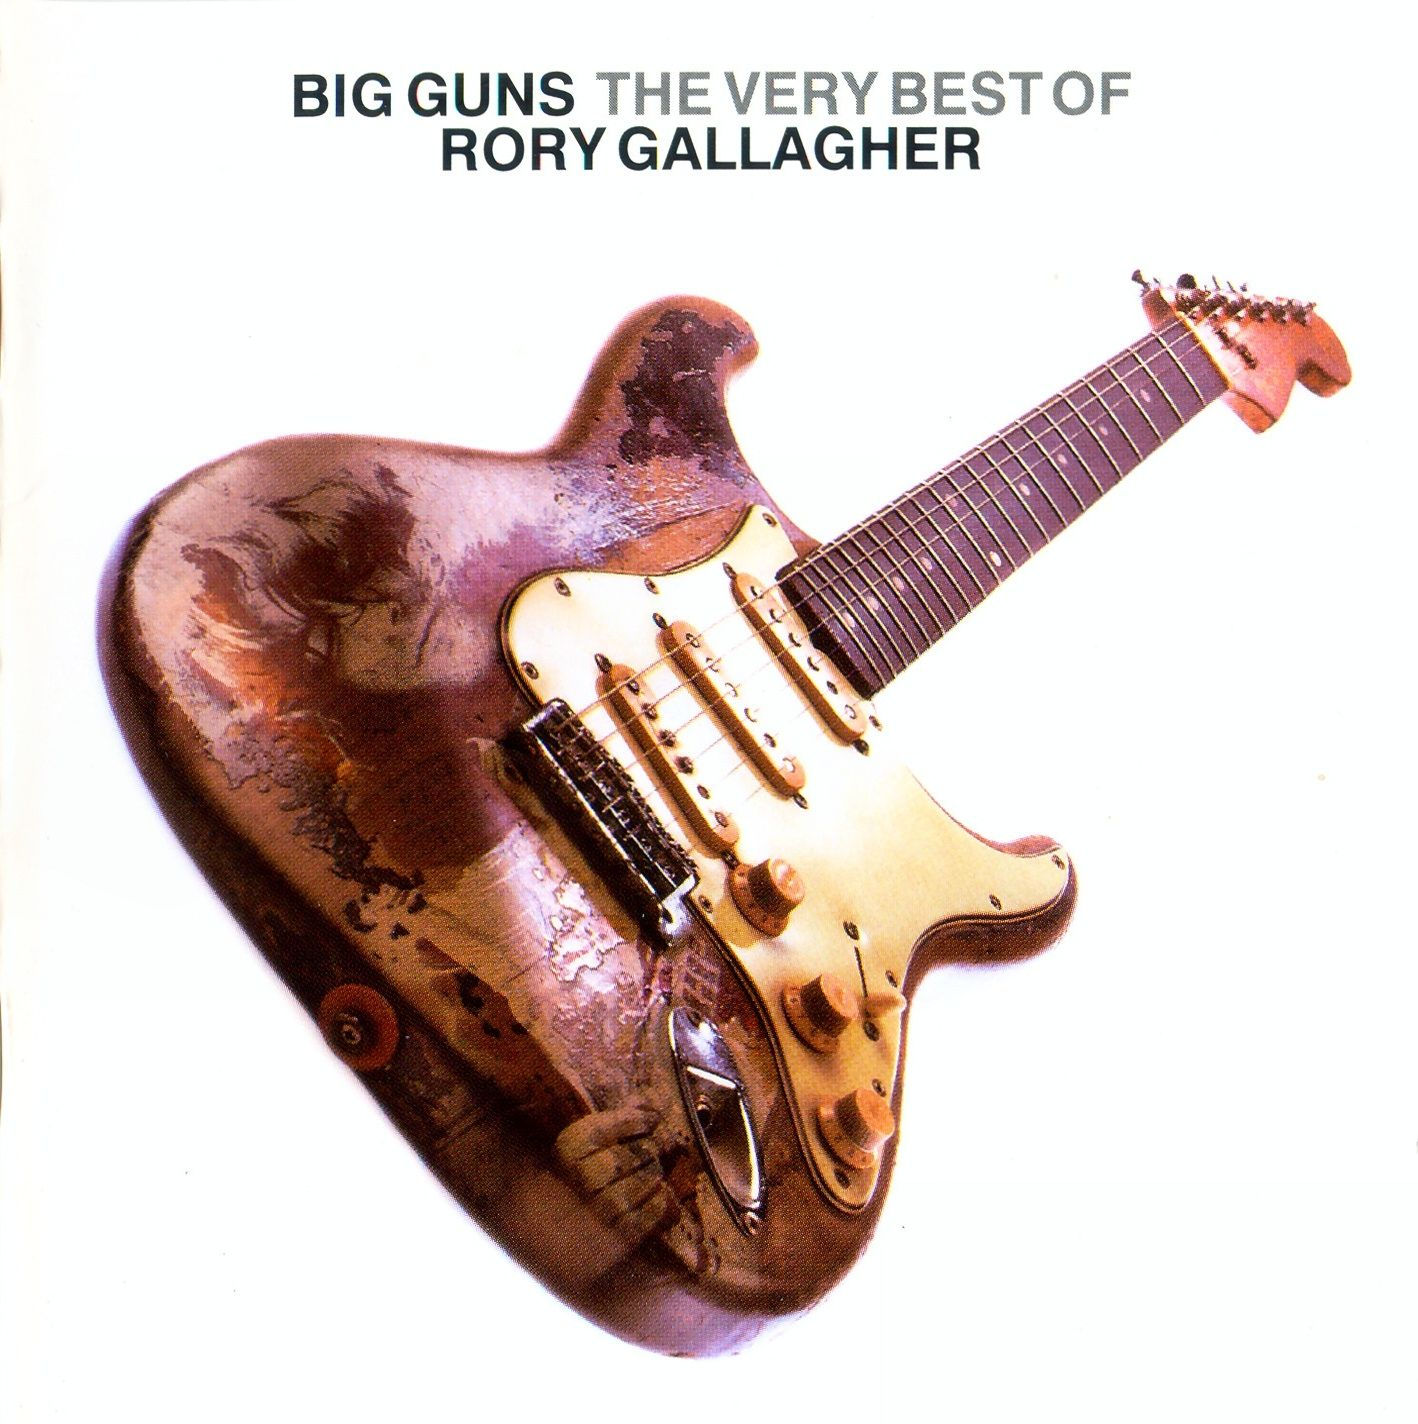 Rory Gallagher - Big Guns - The Very Best Of Rory Gallagher album cover